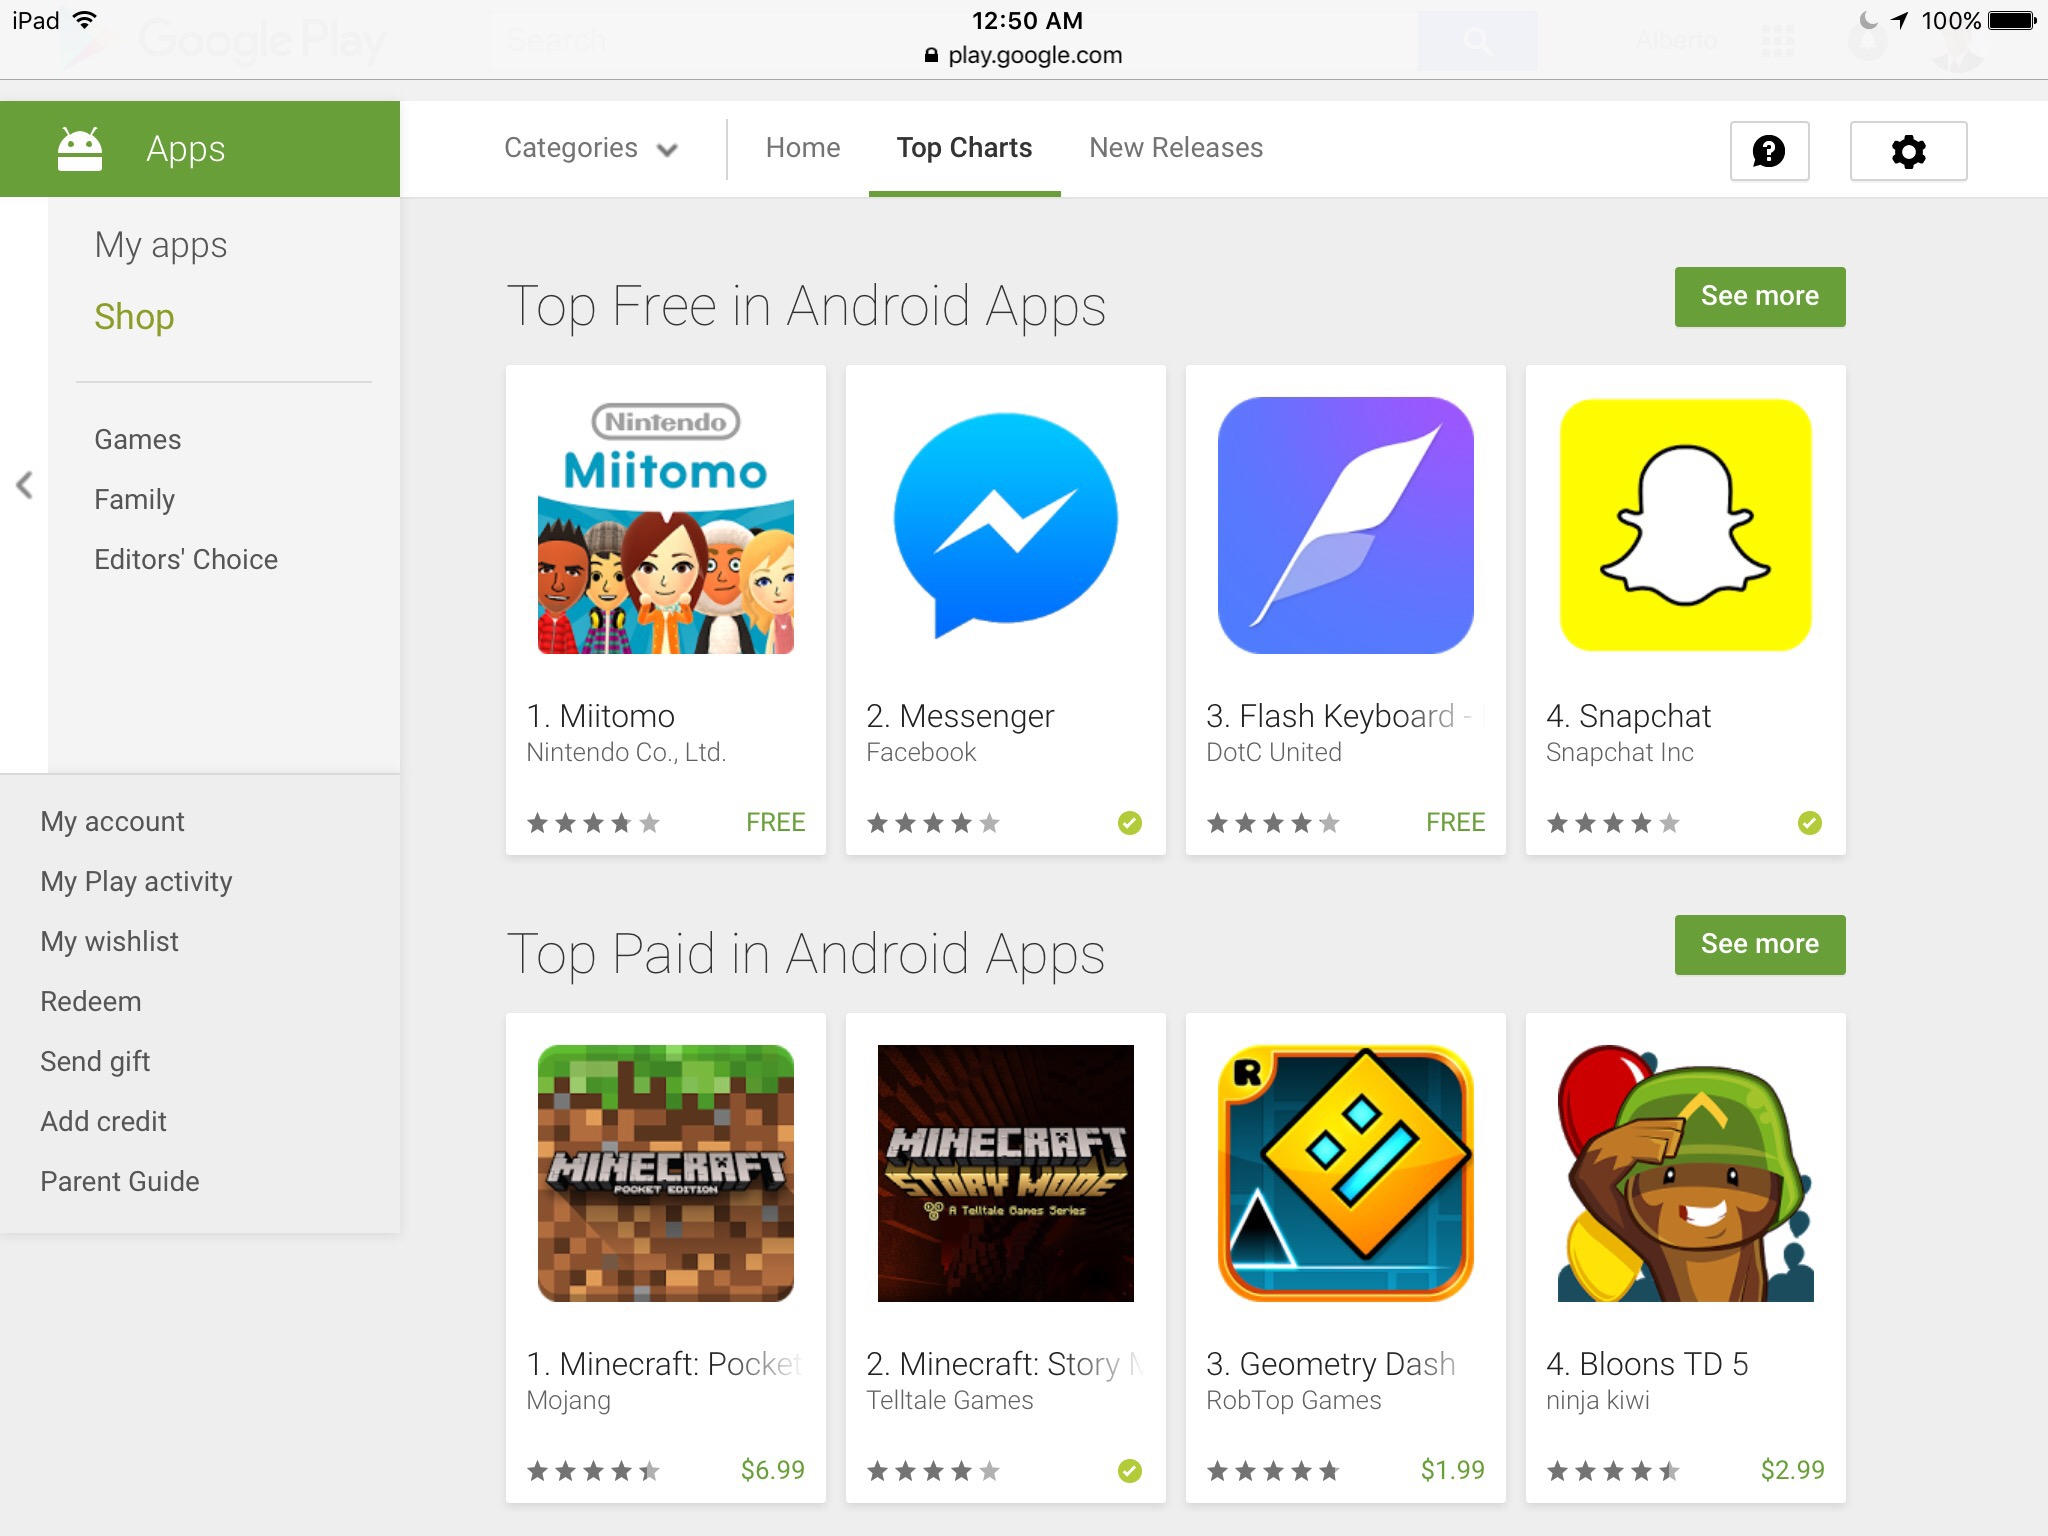 Google Play: Top Charts